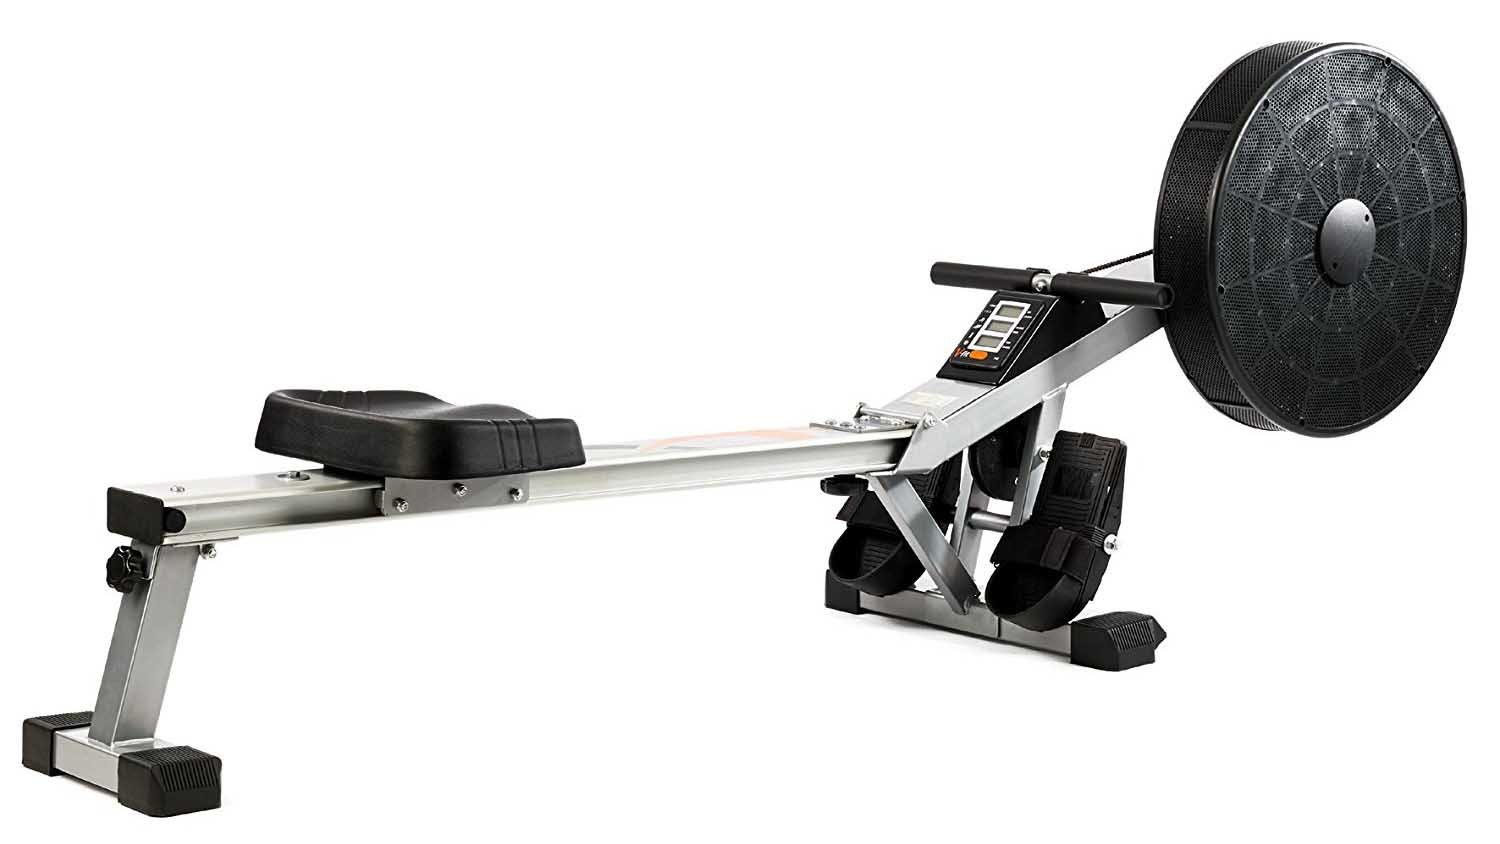 09439e95641 This V-2 rowing machine is currently at a great sale price of £240 from  Amazon